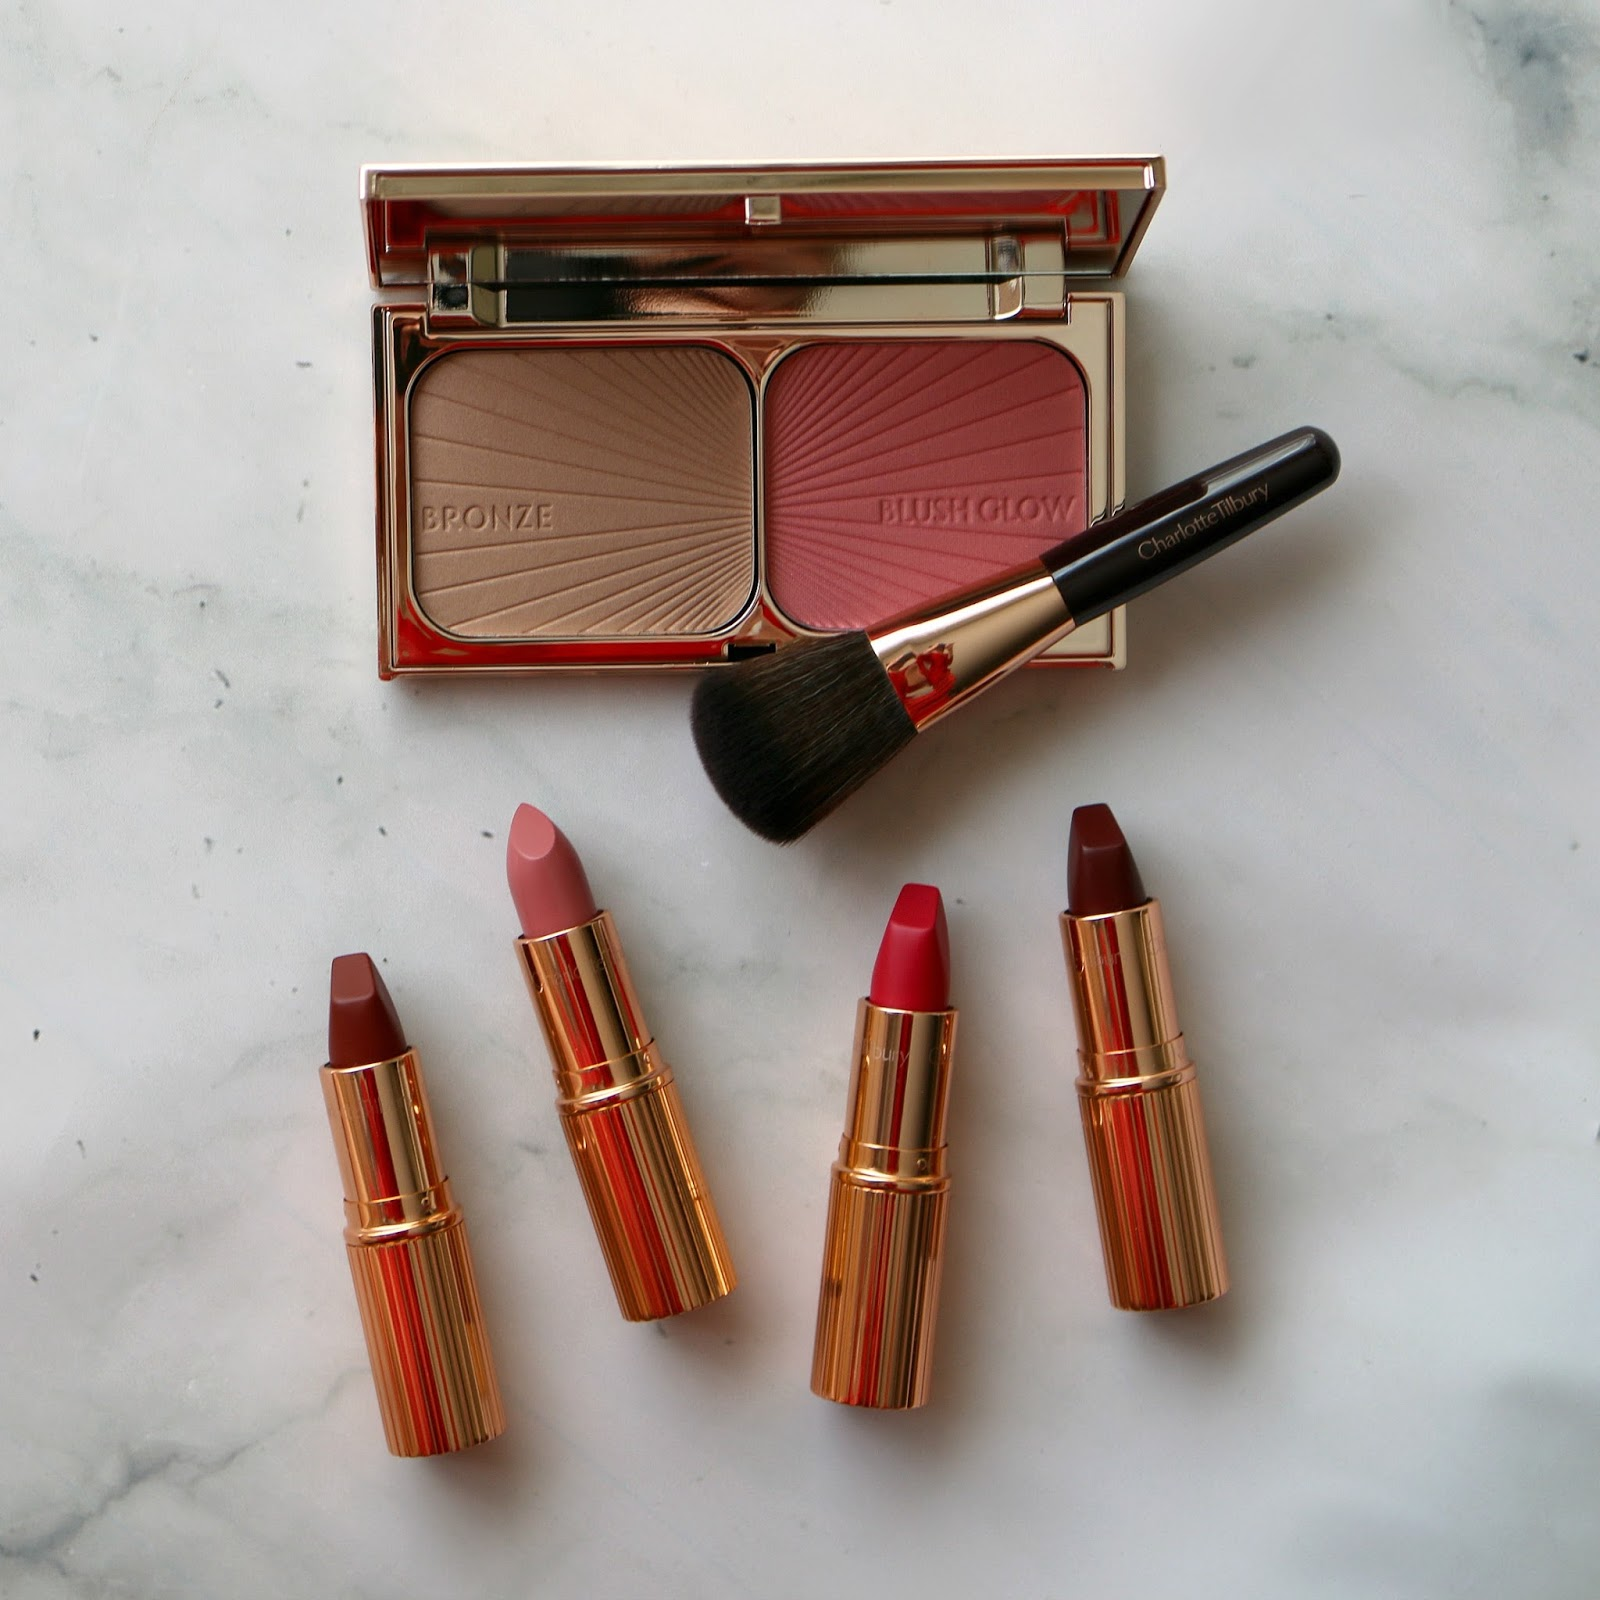 charlotte tilbury filmstar bronze blush glow your lip service royal lipstick trio